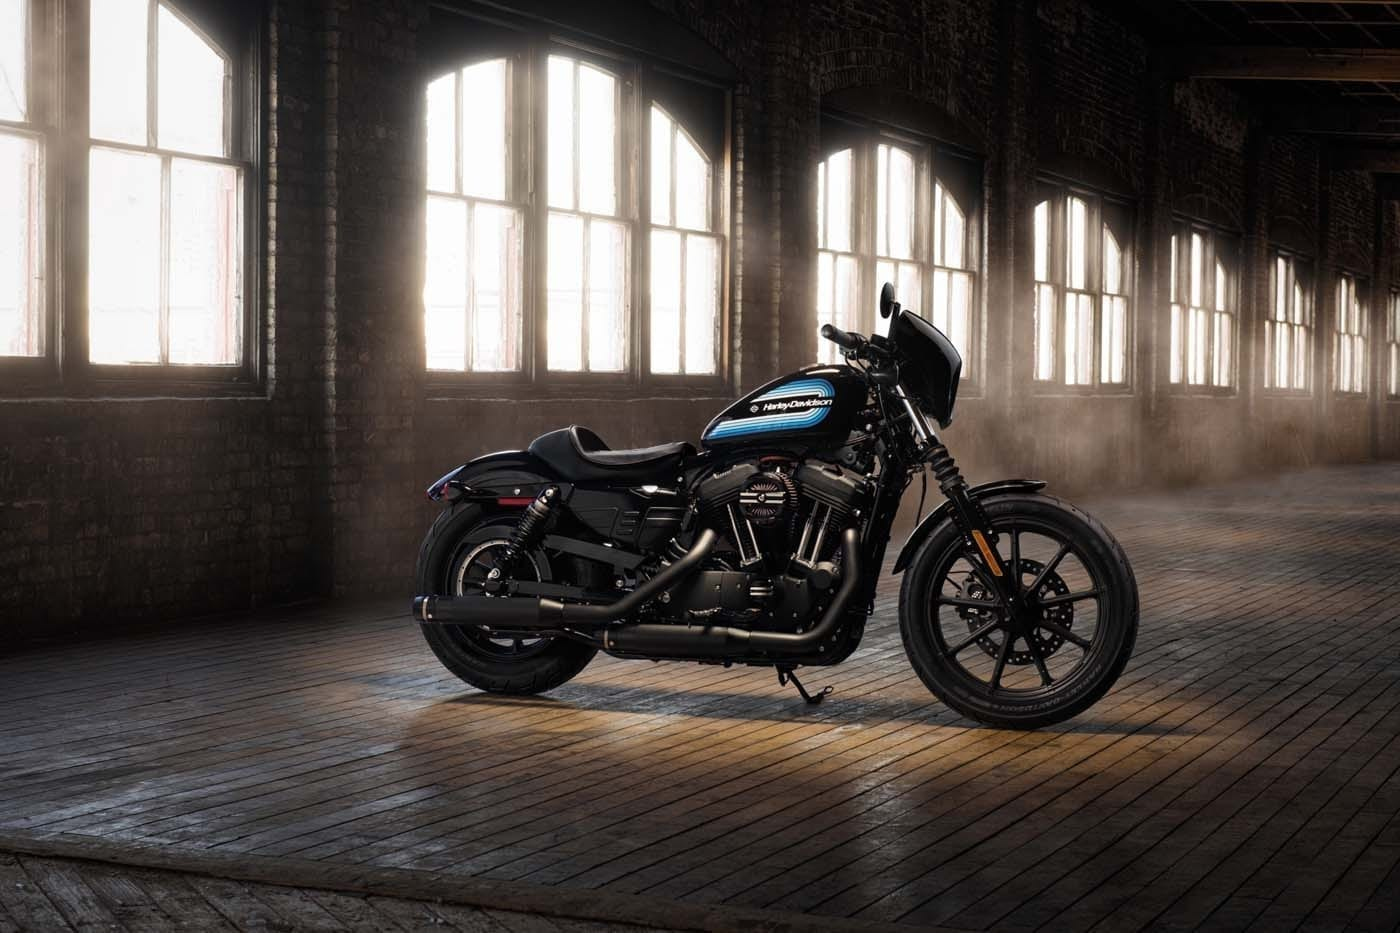 HARLEY-DAVIDSON FORTY-EIGHT SPECIAL AND IRON 1200 SPORTSTERS 15